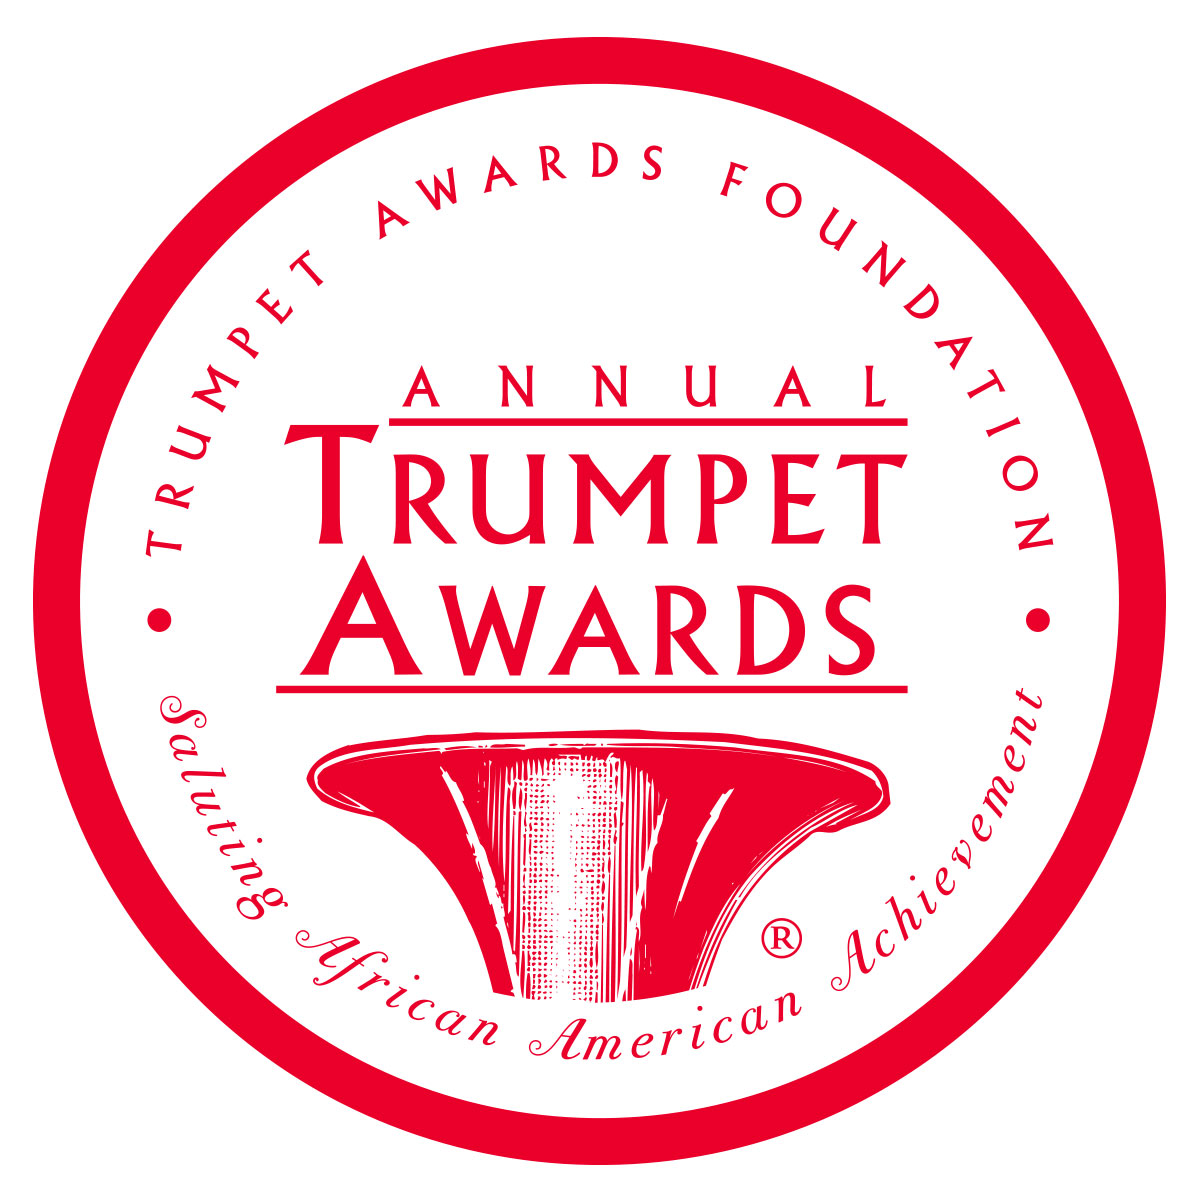 Trumpet Awards 2013 Honorees Announced: Rickey Smiley and Essence Atkins Will Co-Host Star Studded Ceremony | Virtual-Strategy Magazine